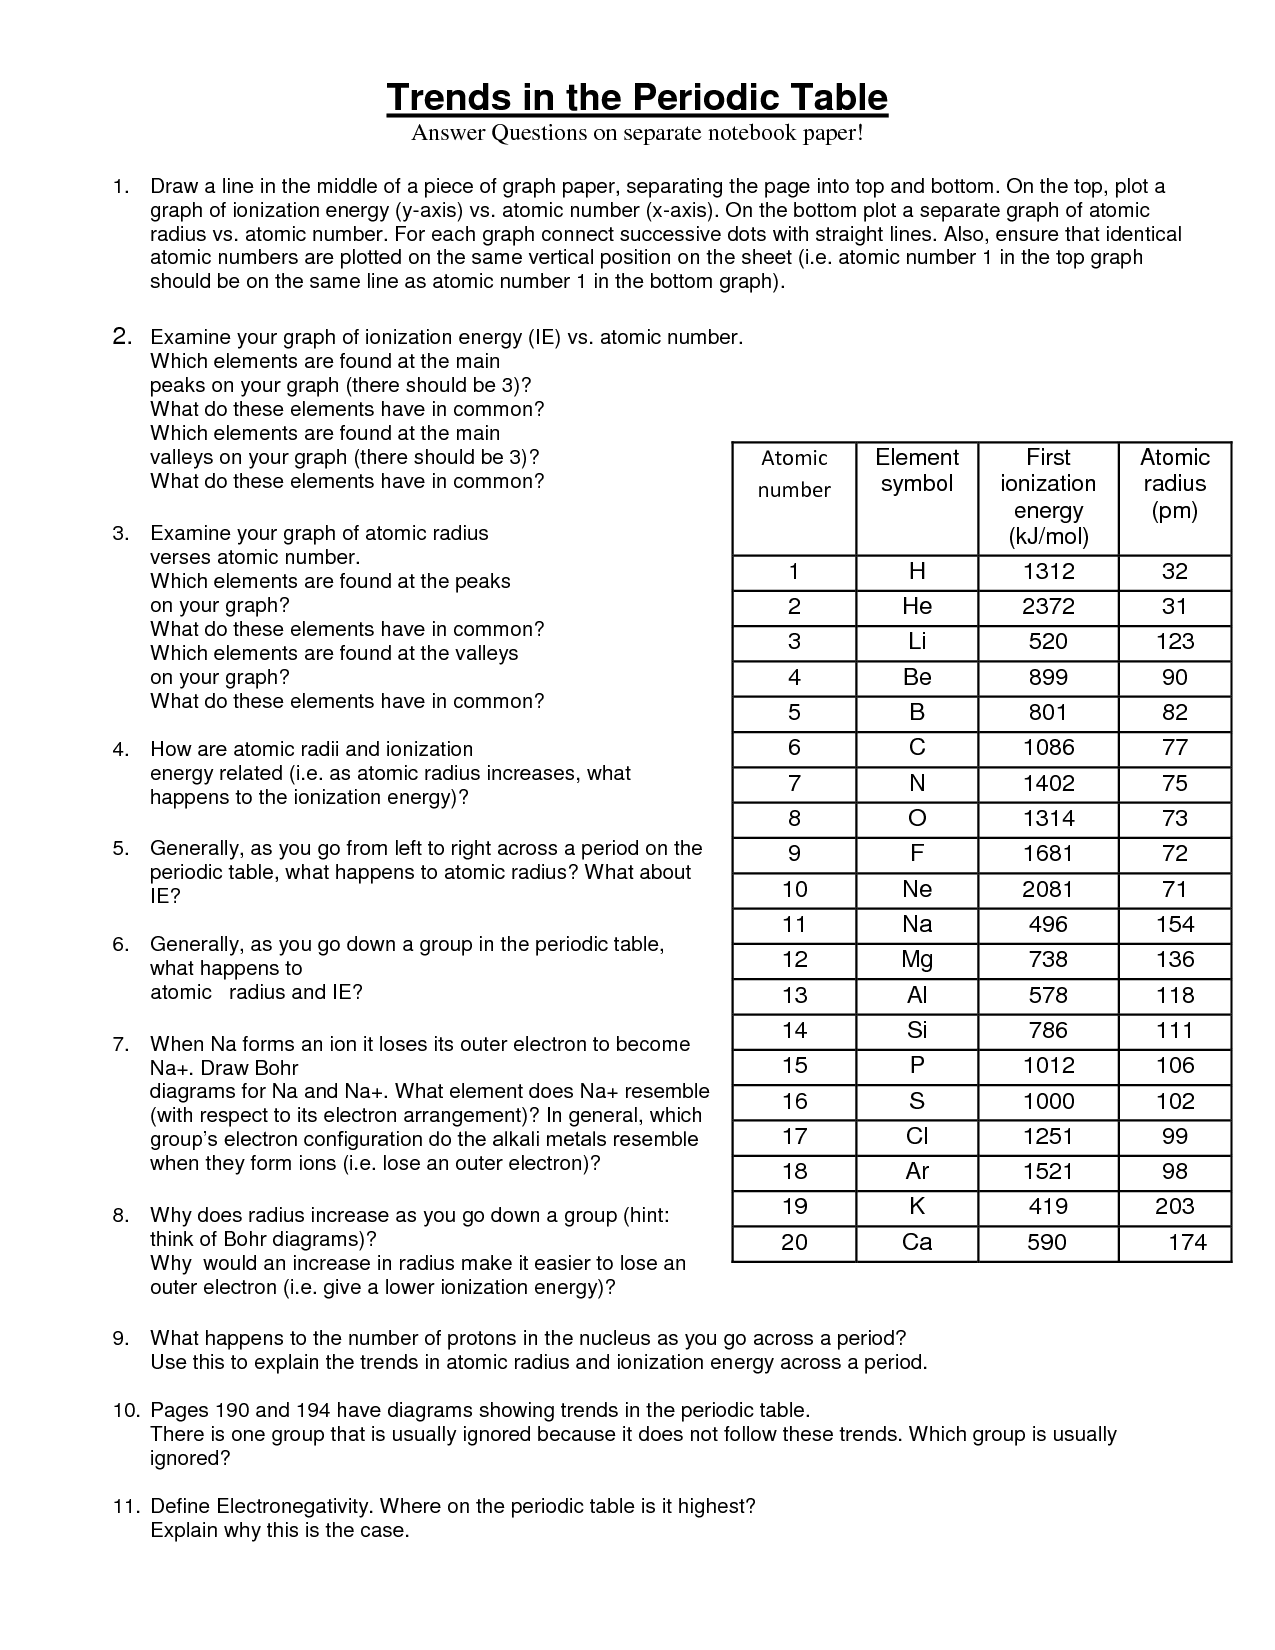 Chemistry Unit 11 Worksheet 2 Periodic Trends Answers 620289